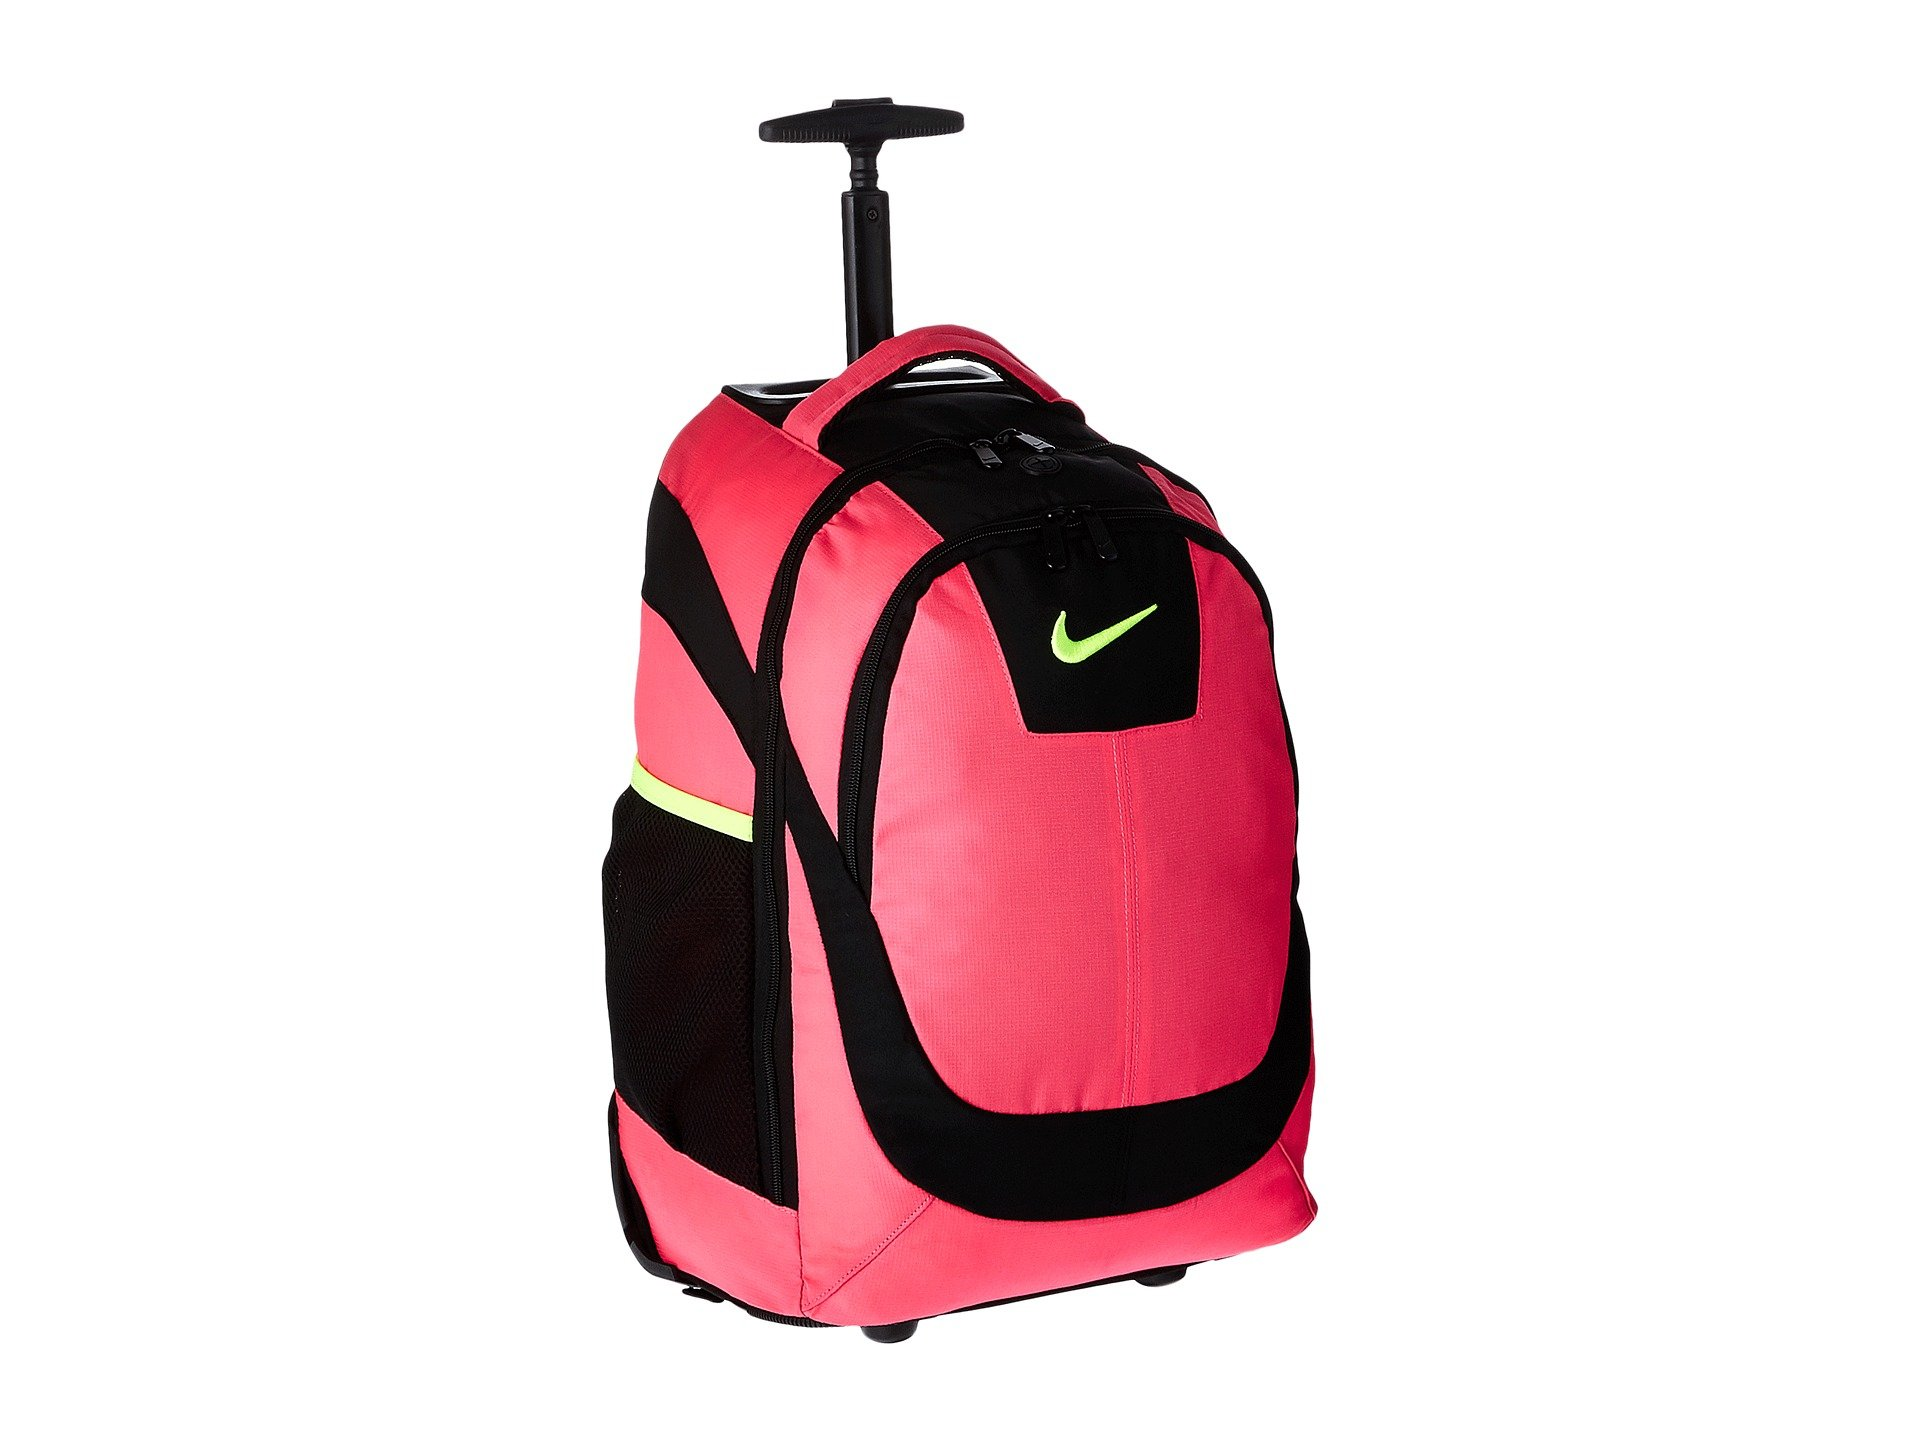 1a588f8ce2 nike rolling backpack green cheap